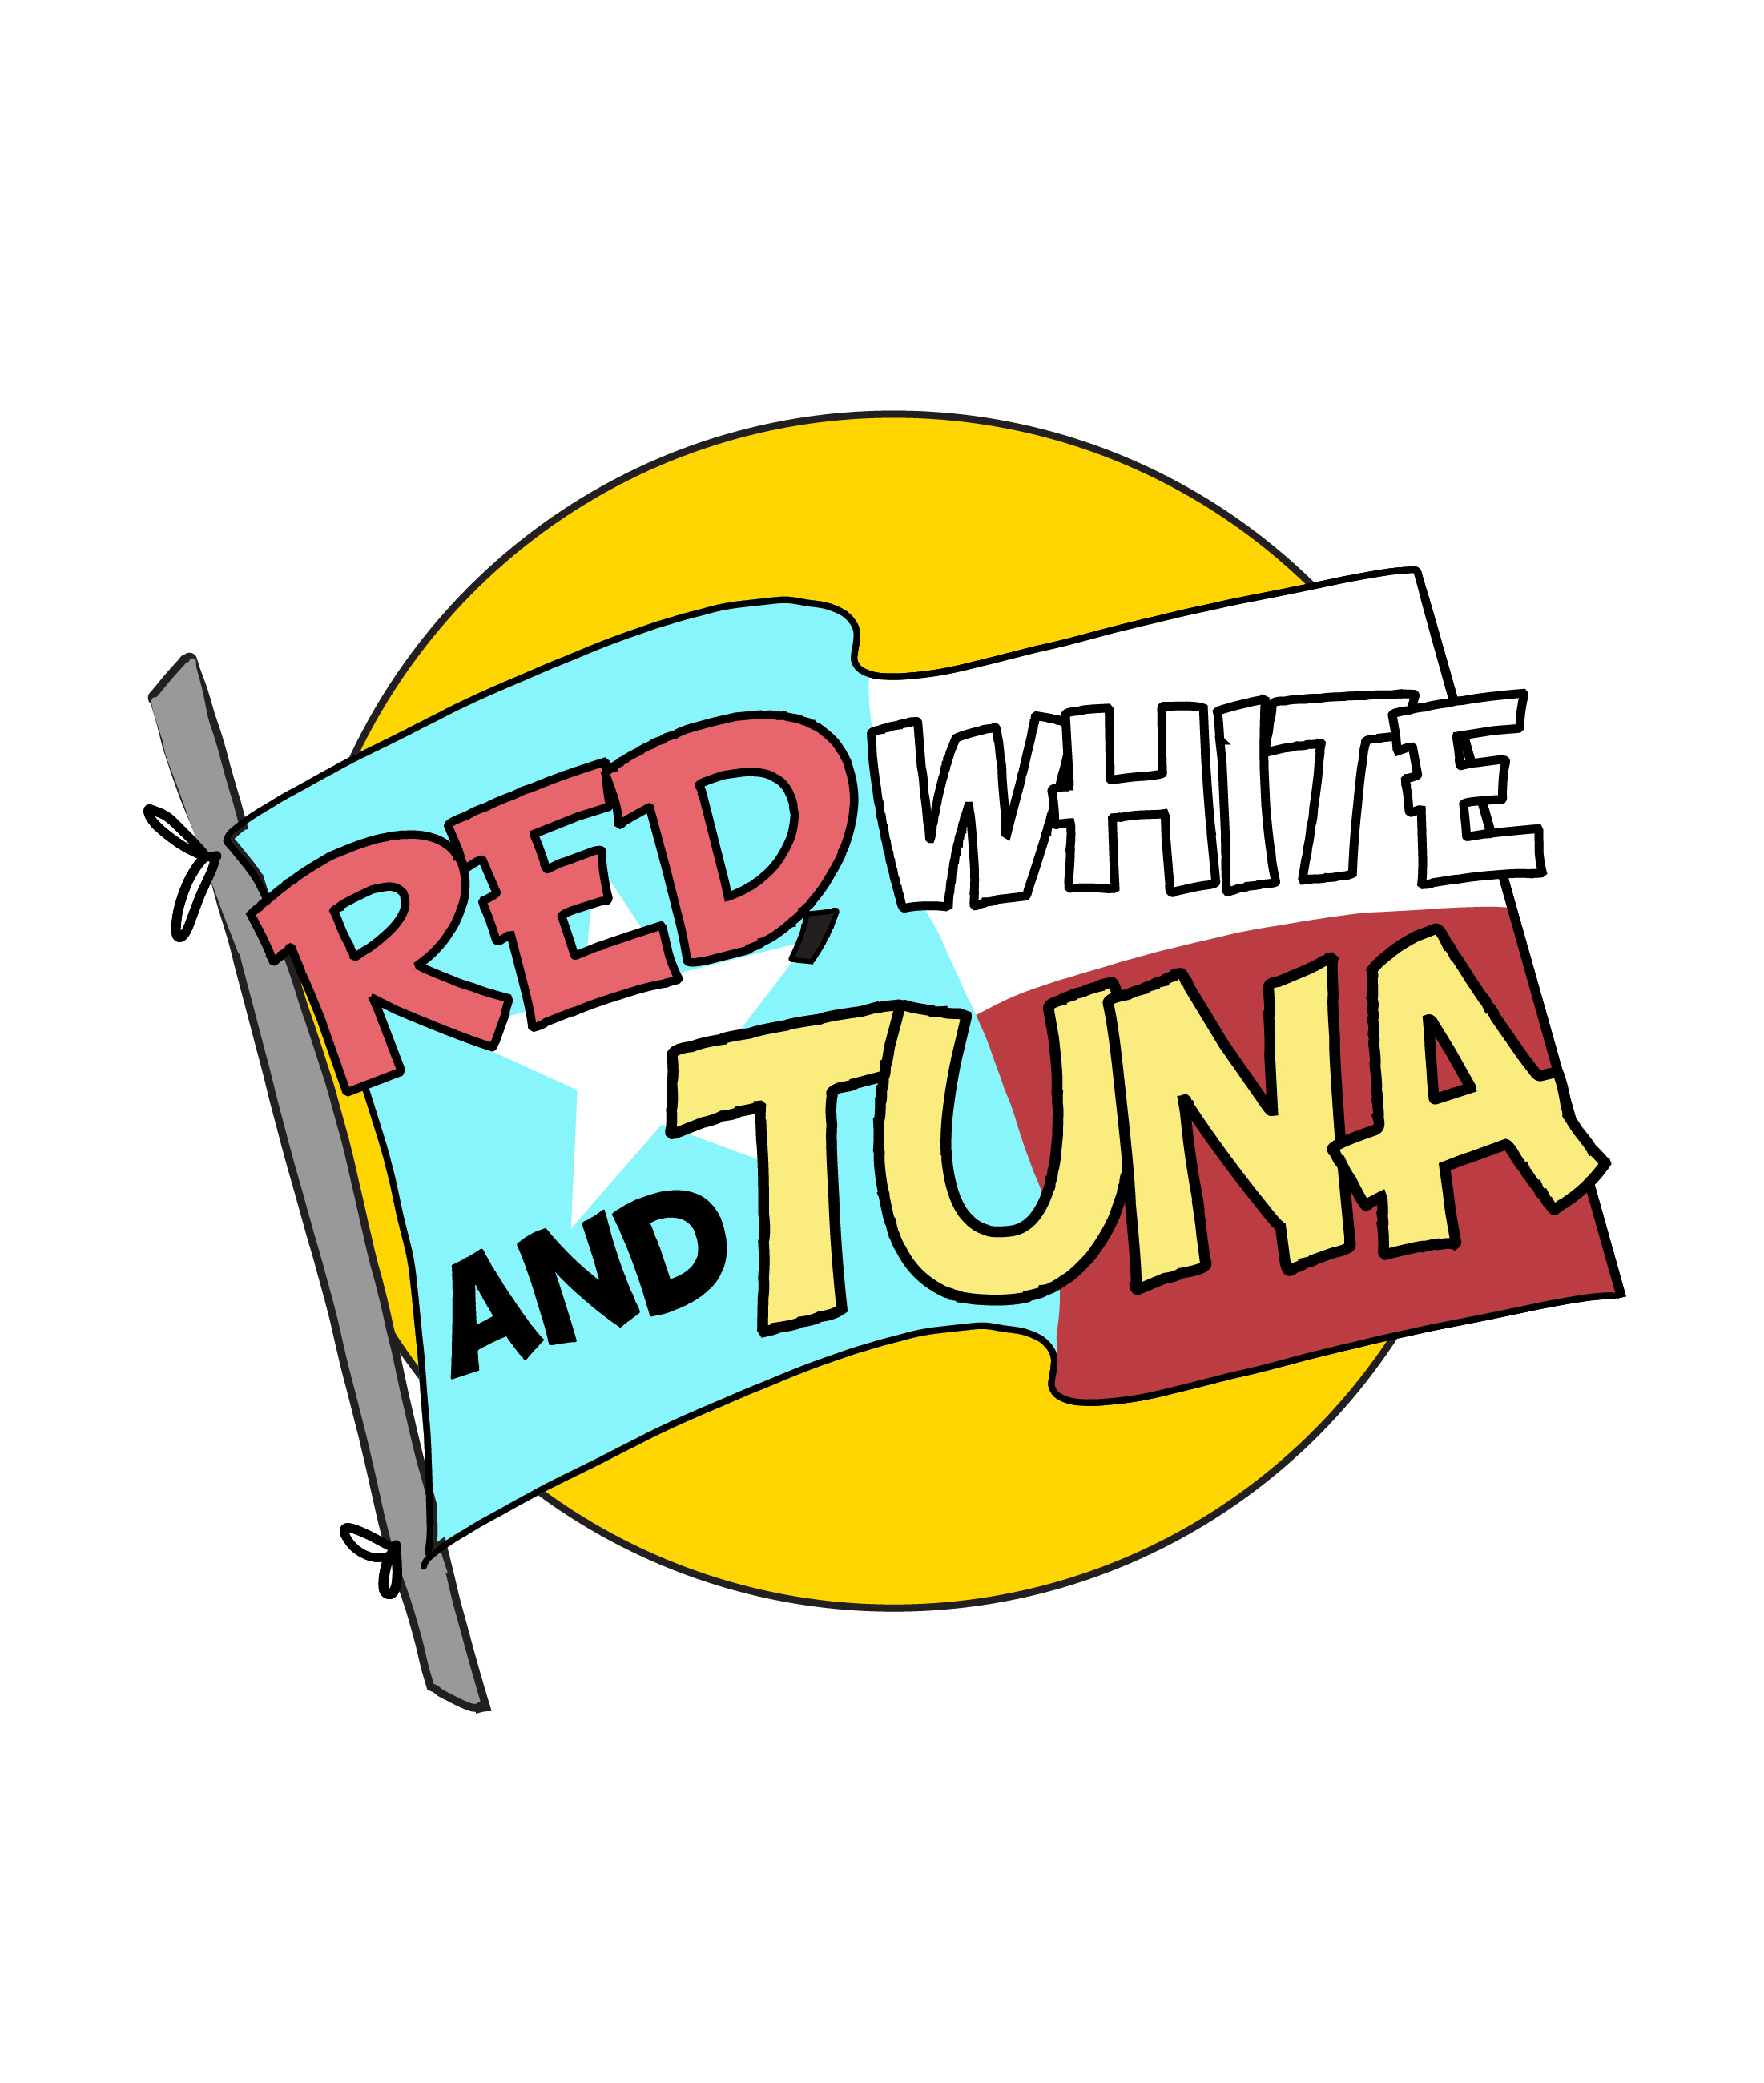 Red-White-and-Tuna-Red-White-and-Tuna-logojpg.jpg